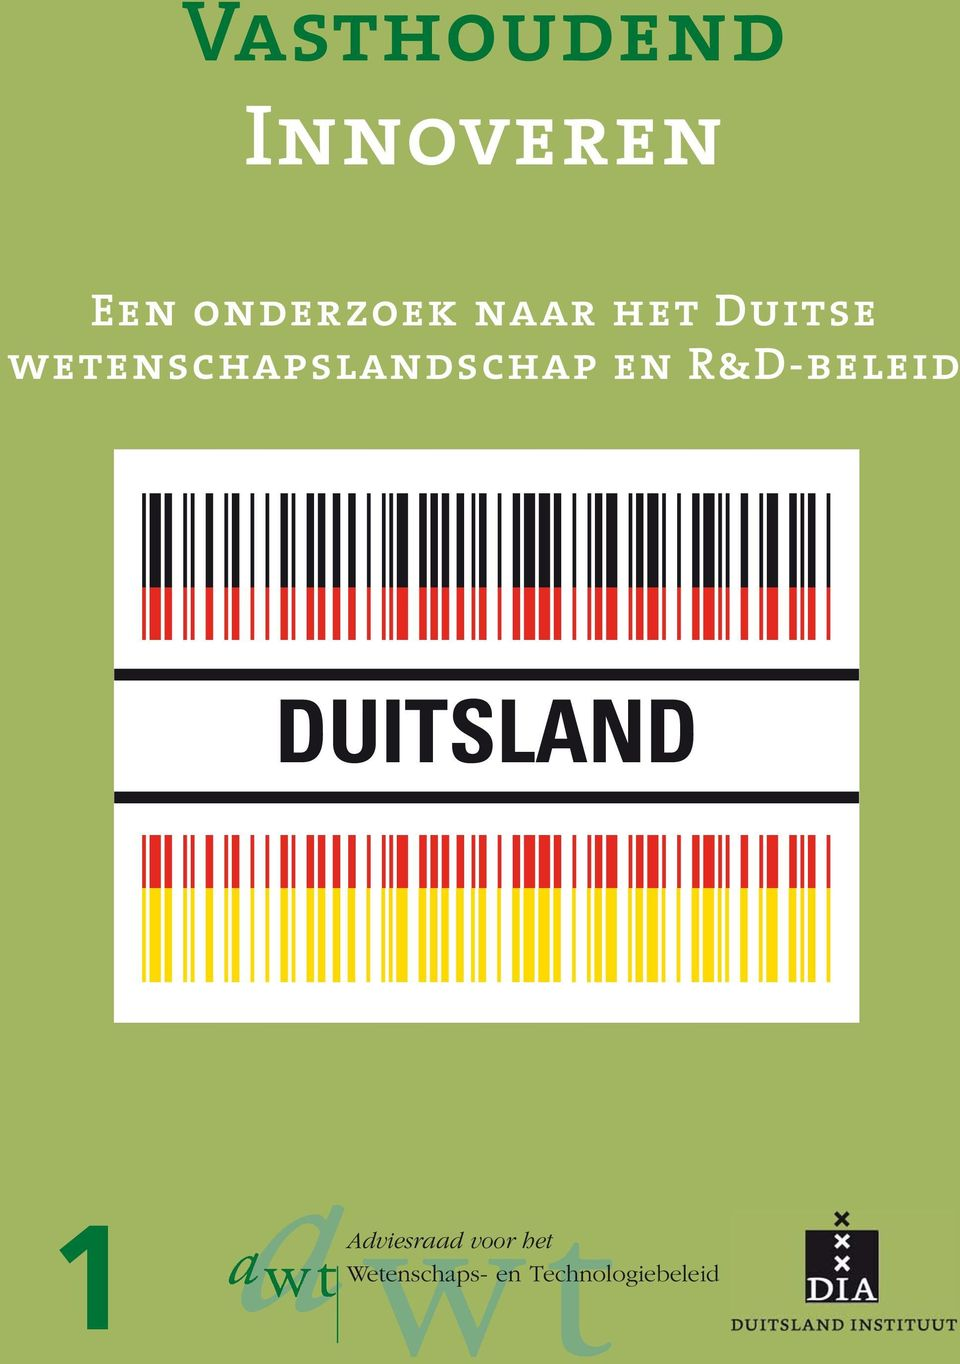 DUITSLAND DUITSLAND DUITSLAND MADE IN DUITSLAND MADE IN